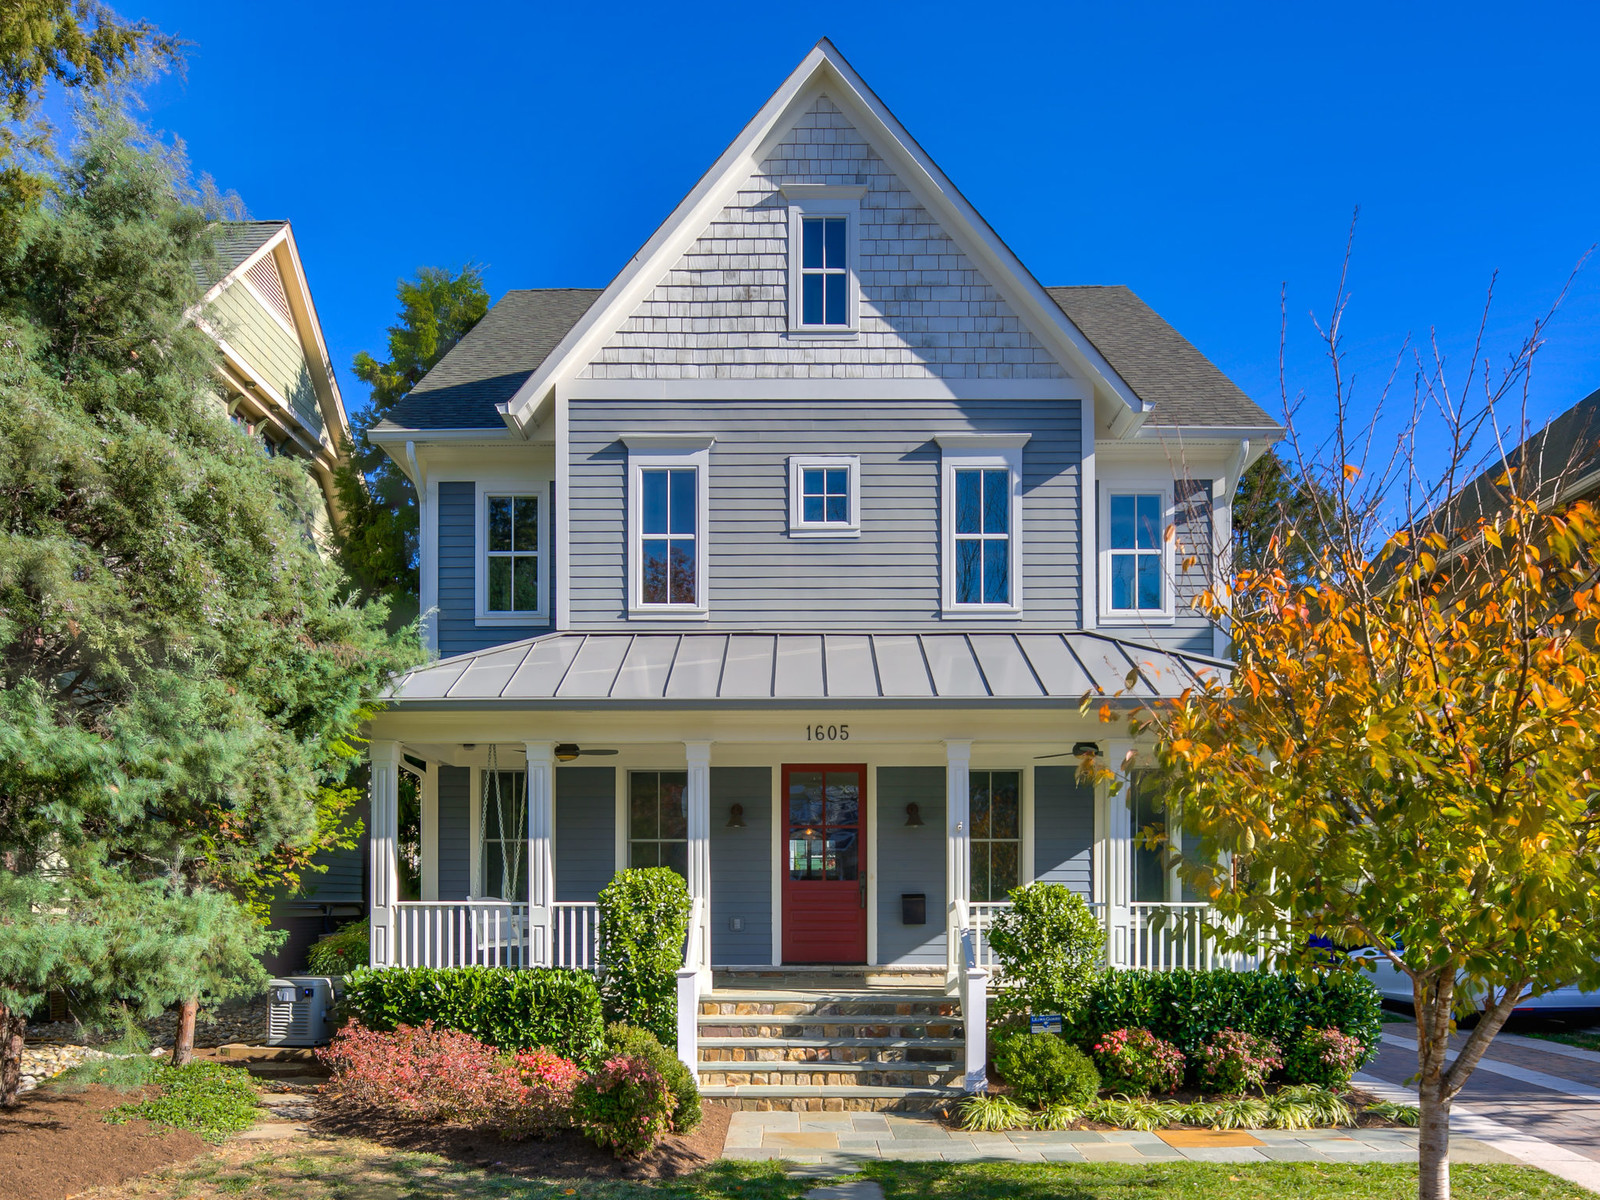 Single Family Home for Sale at Enjoy the Very Best of Lyon Village 1605 N Edgewood Street Arlington, Virginia, 22201 United States